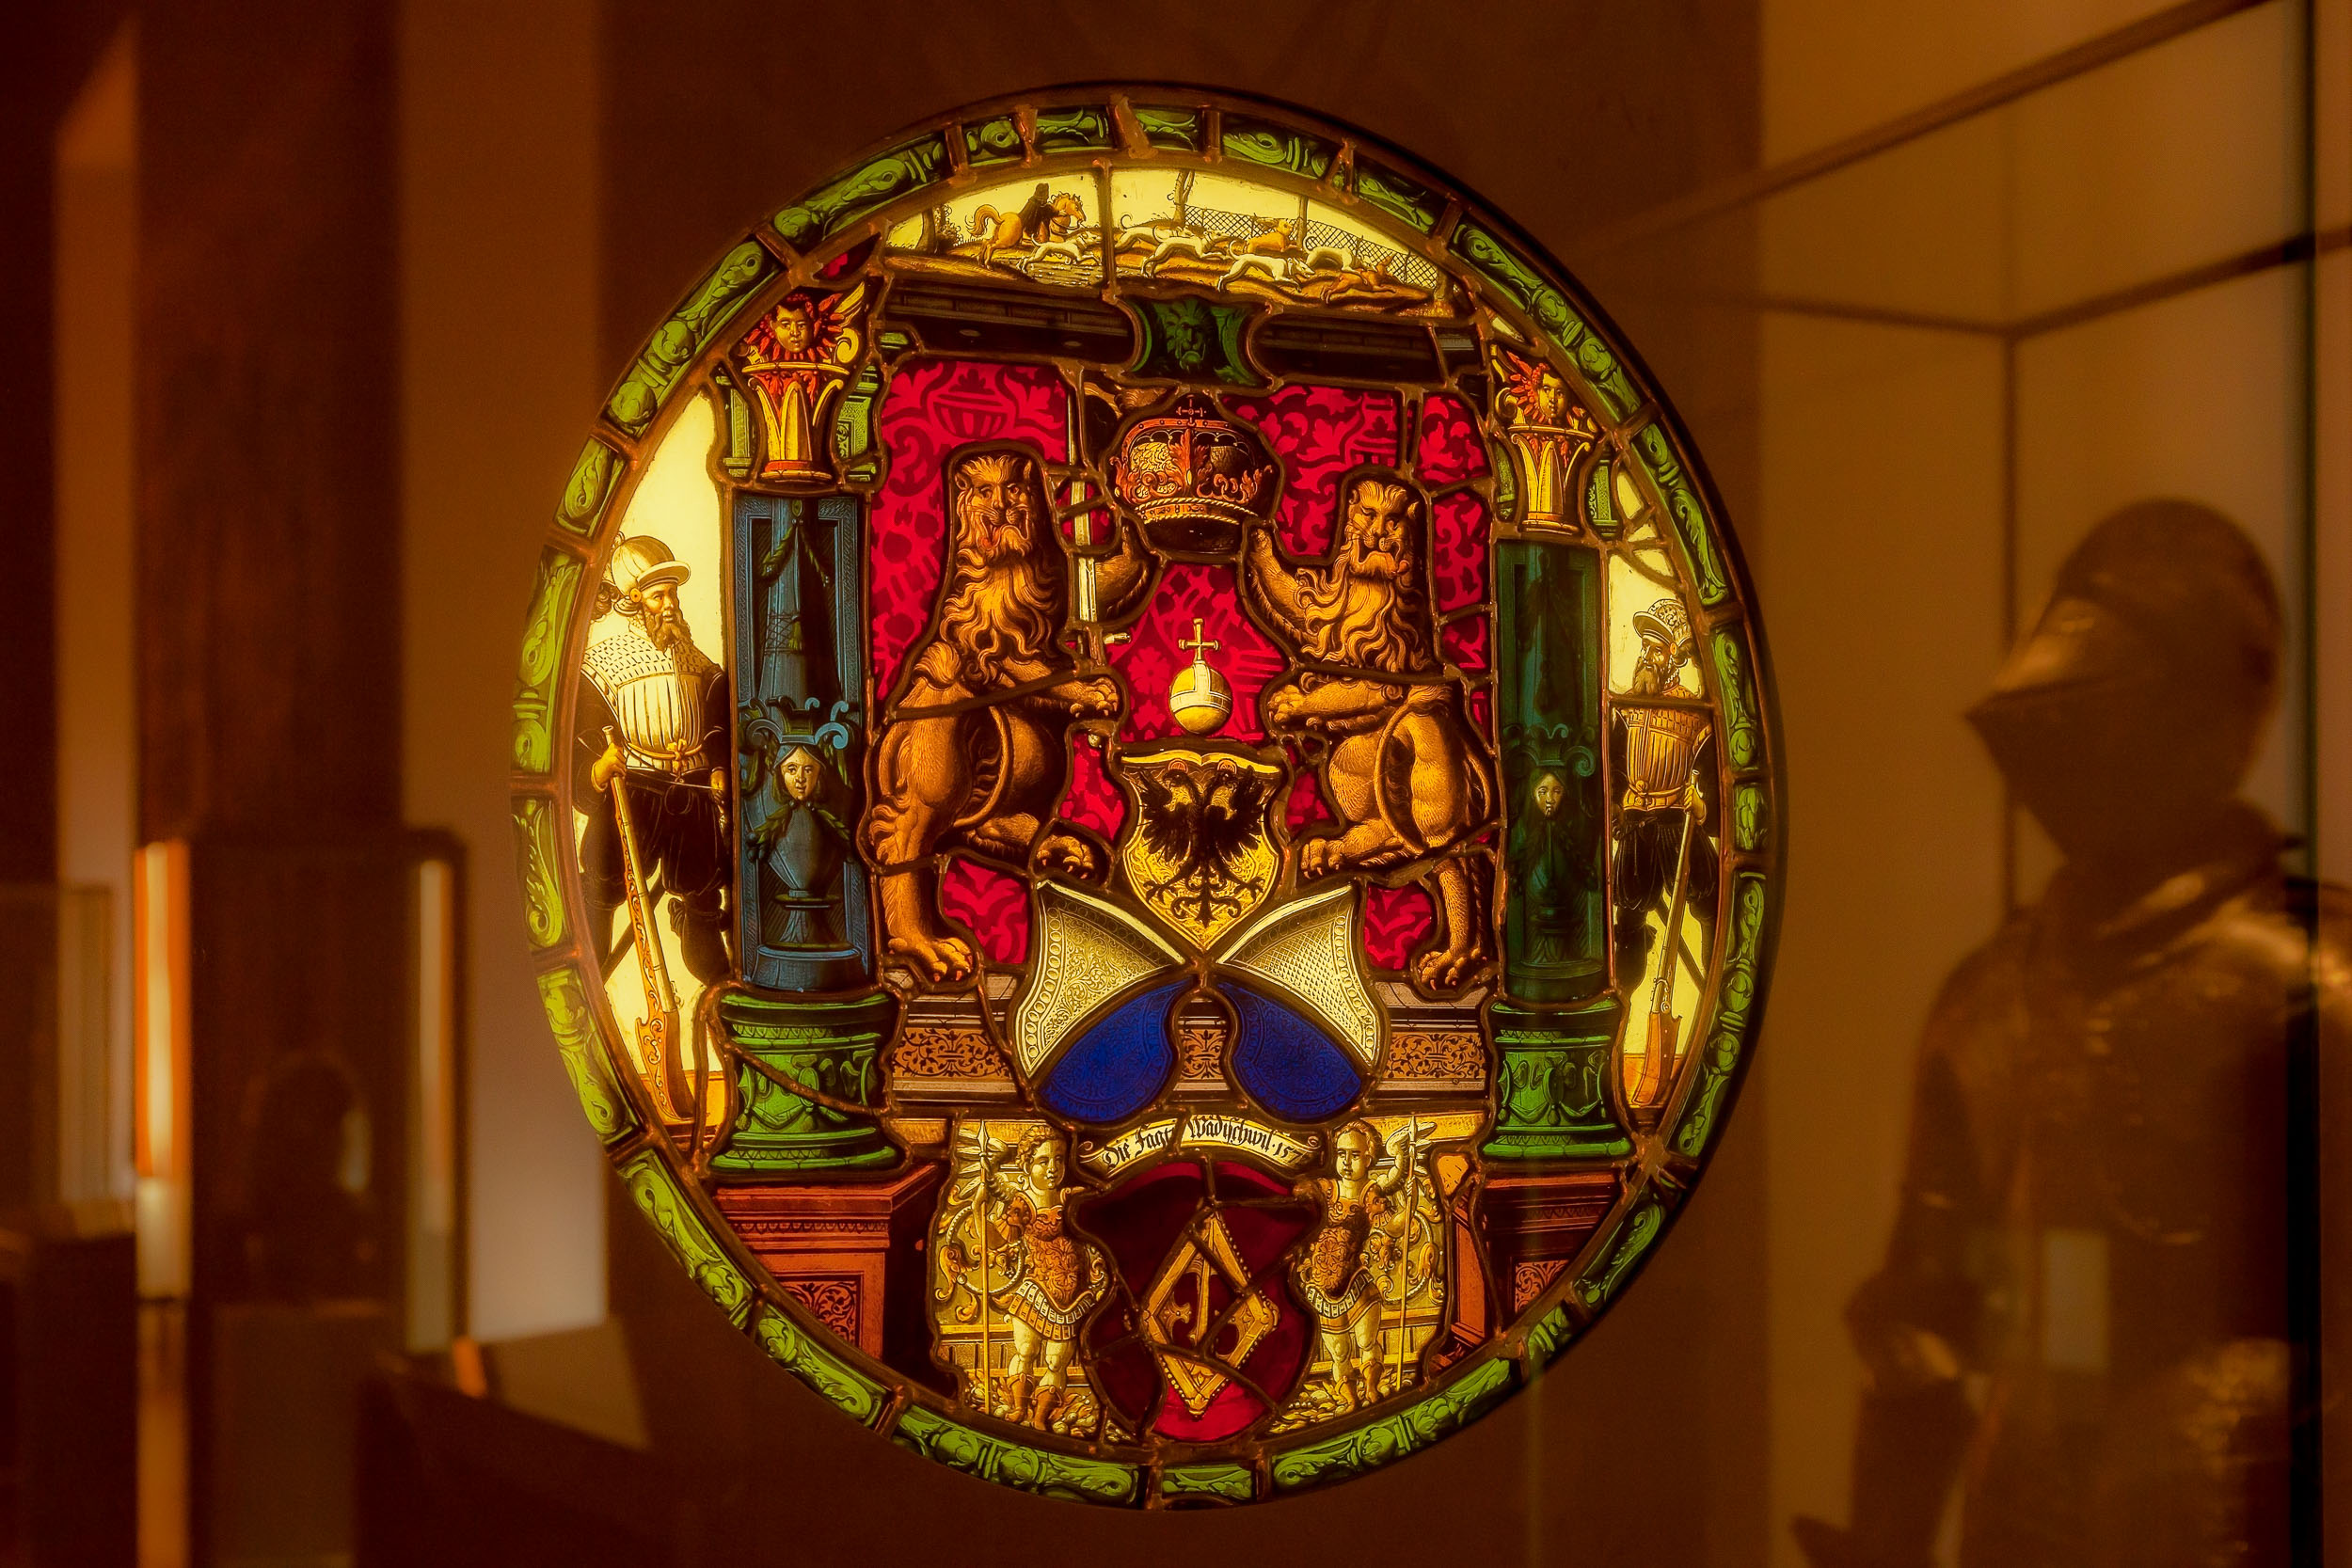 A coat of arms . behind a class cabinet, in the Musée du Louvre in Paris, France .